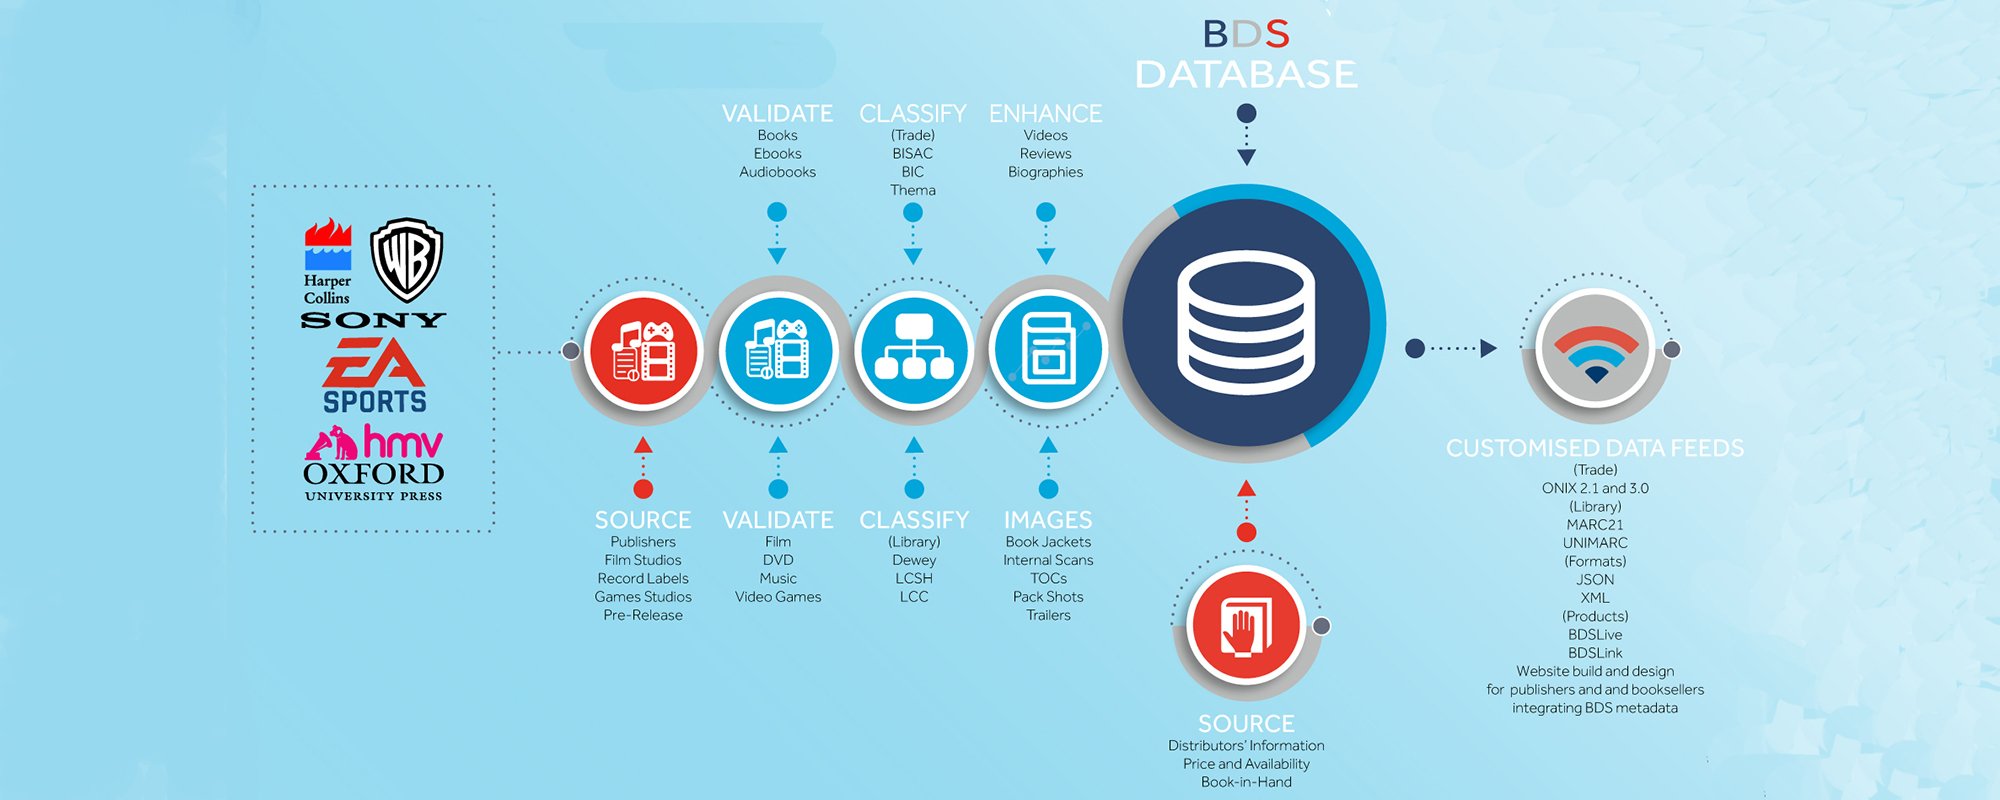 bds database infographic